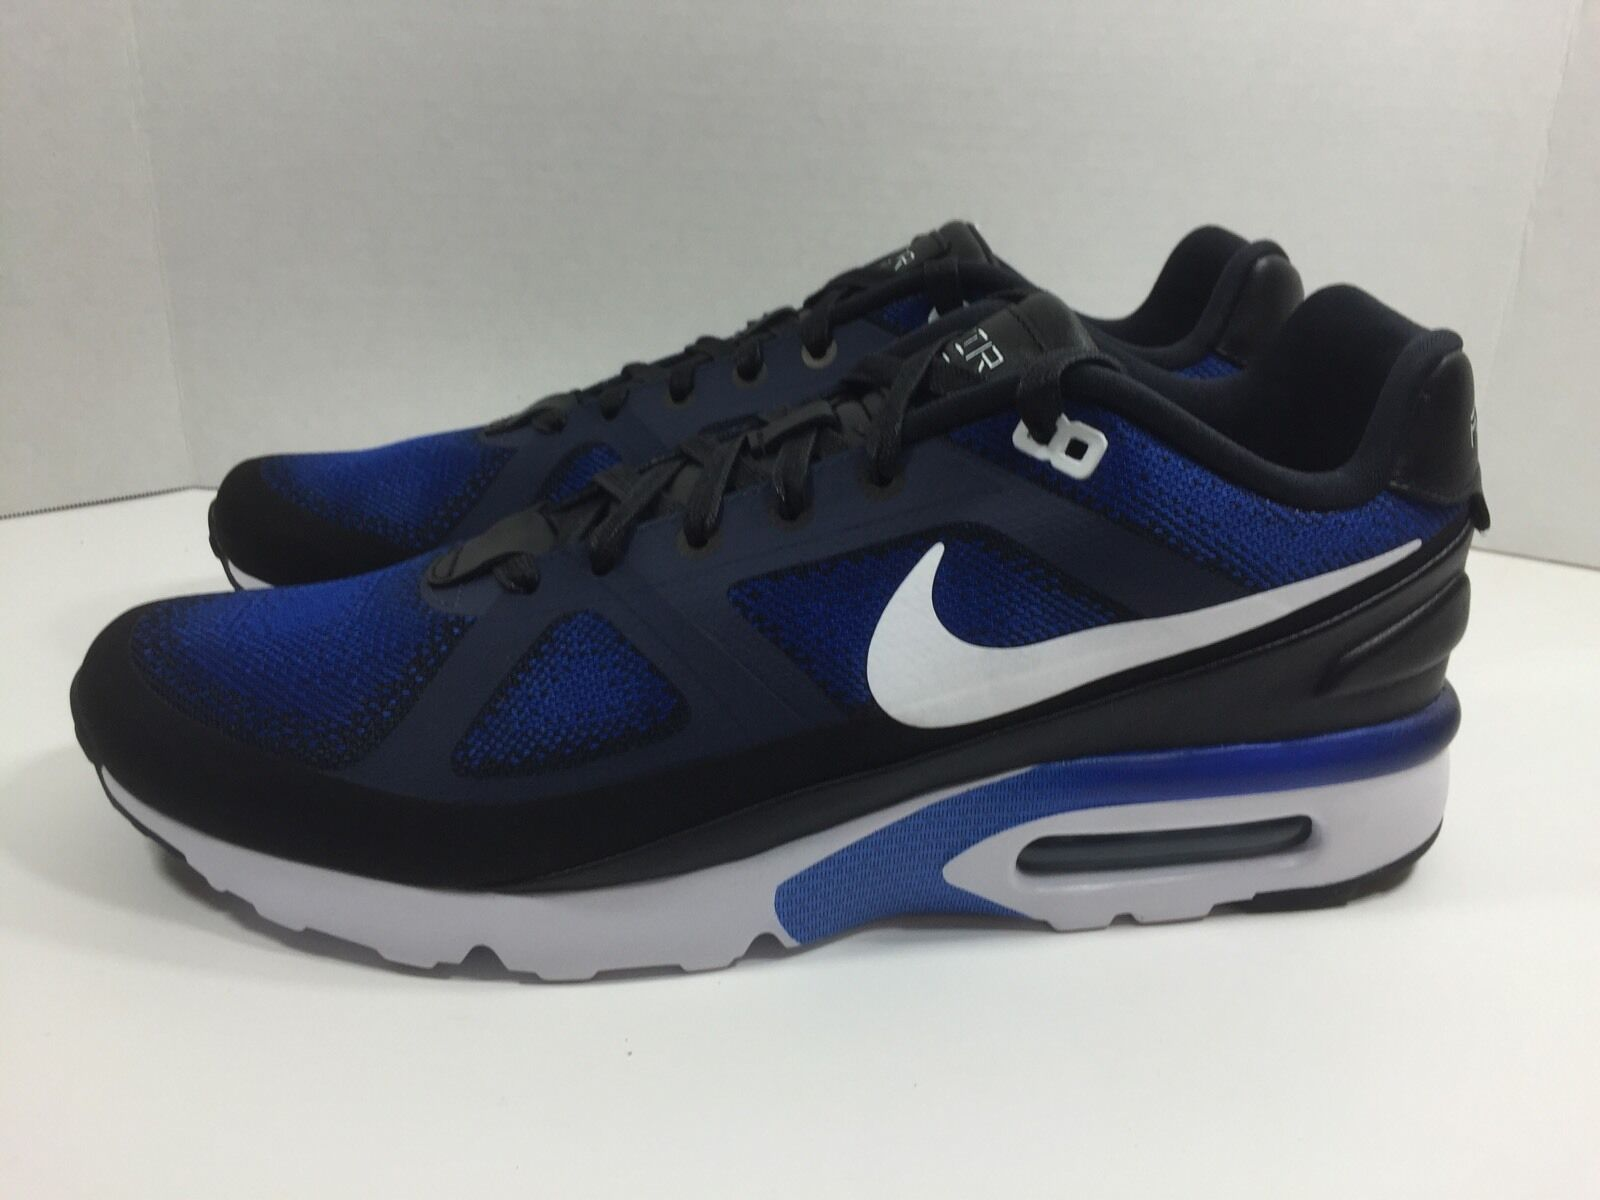 Nike Air Max MP Mark Parker Ultra 848625-401 Size 13 LIMITED 100% Authentic HTM